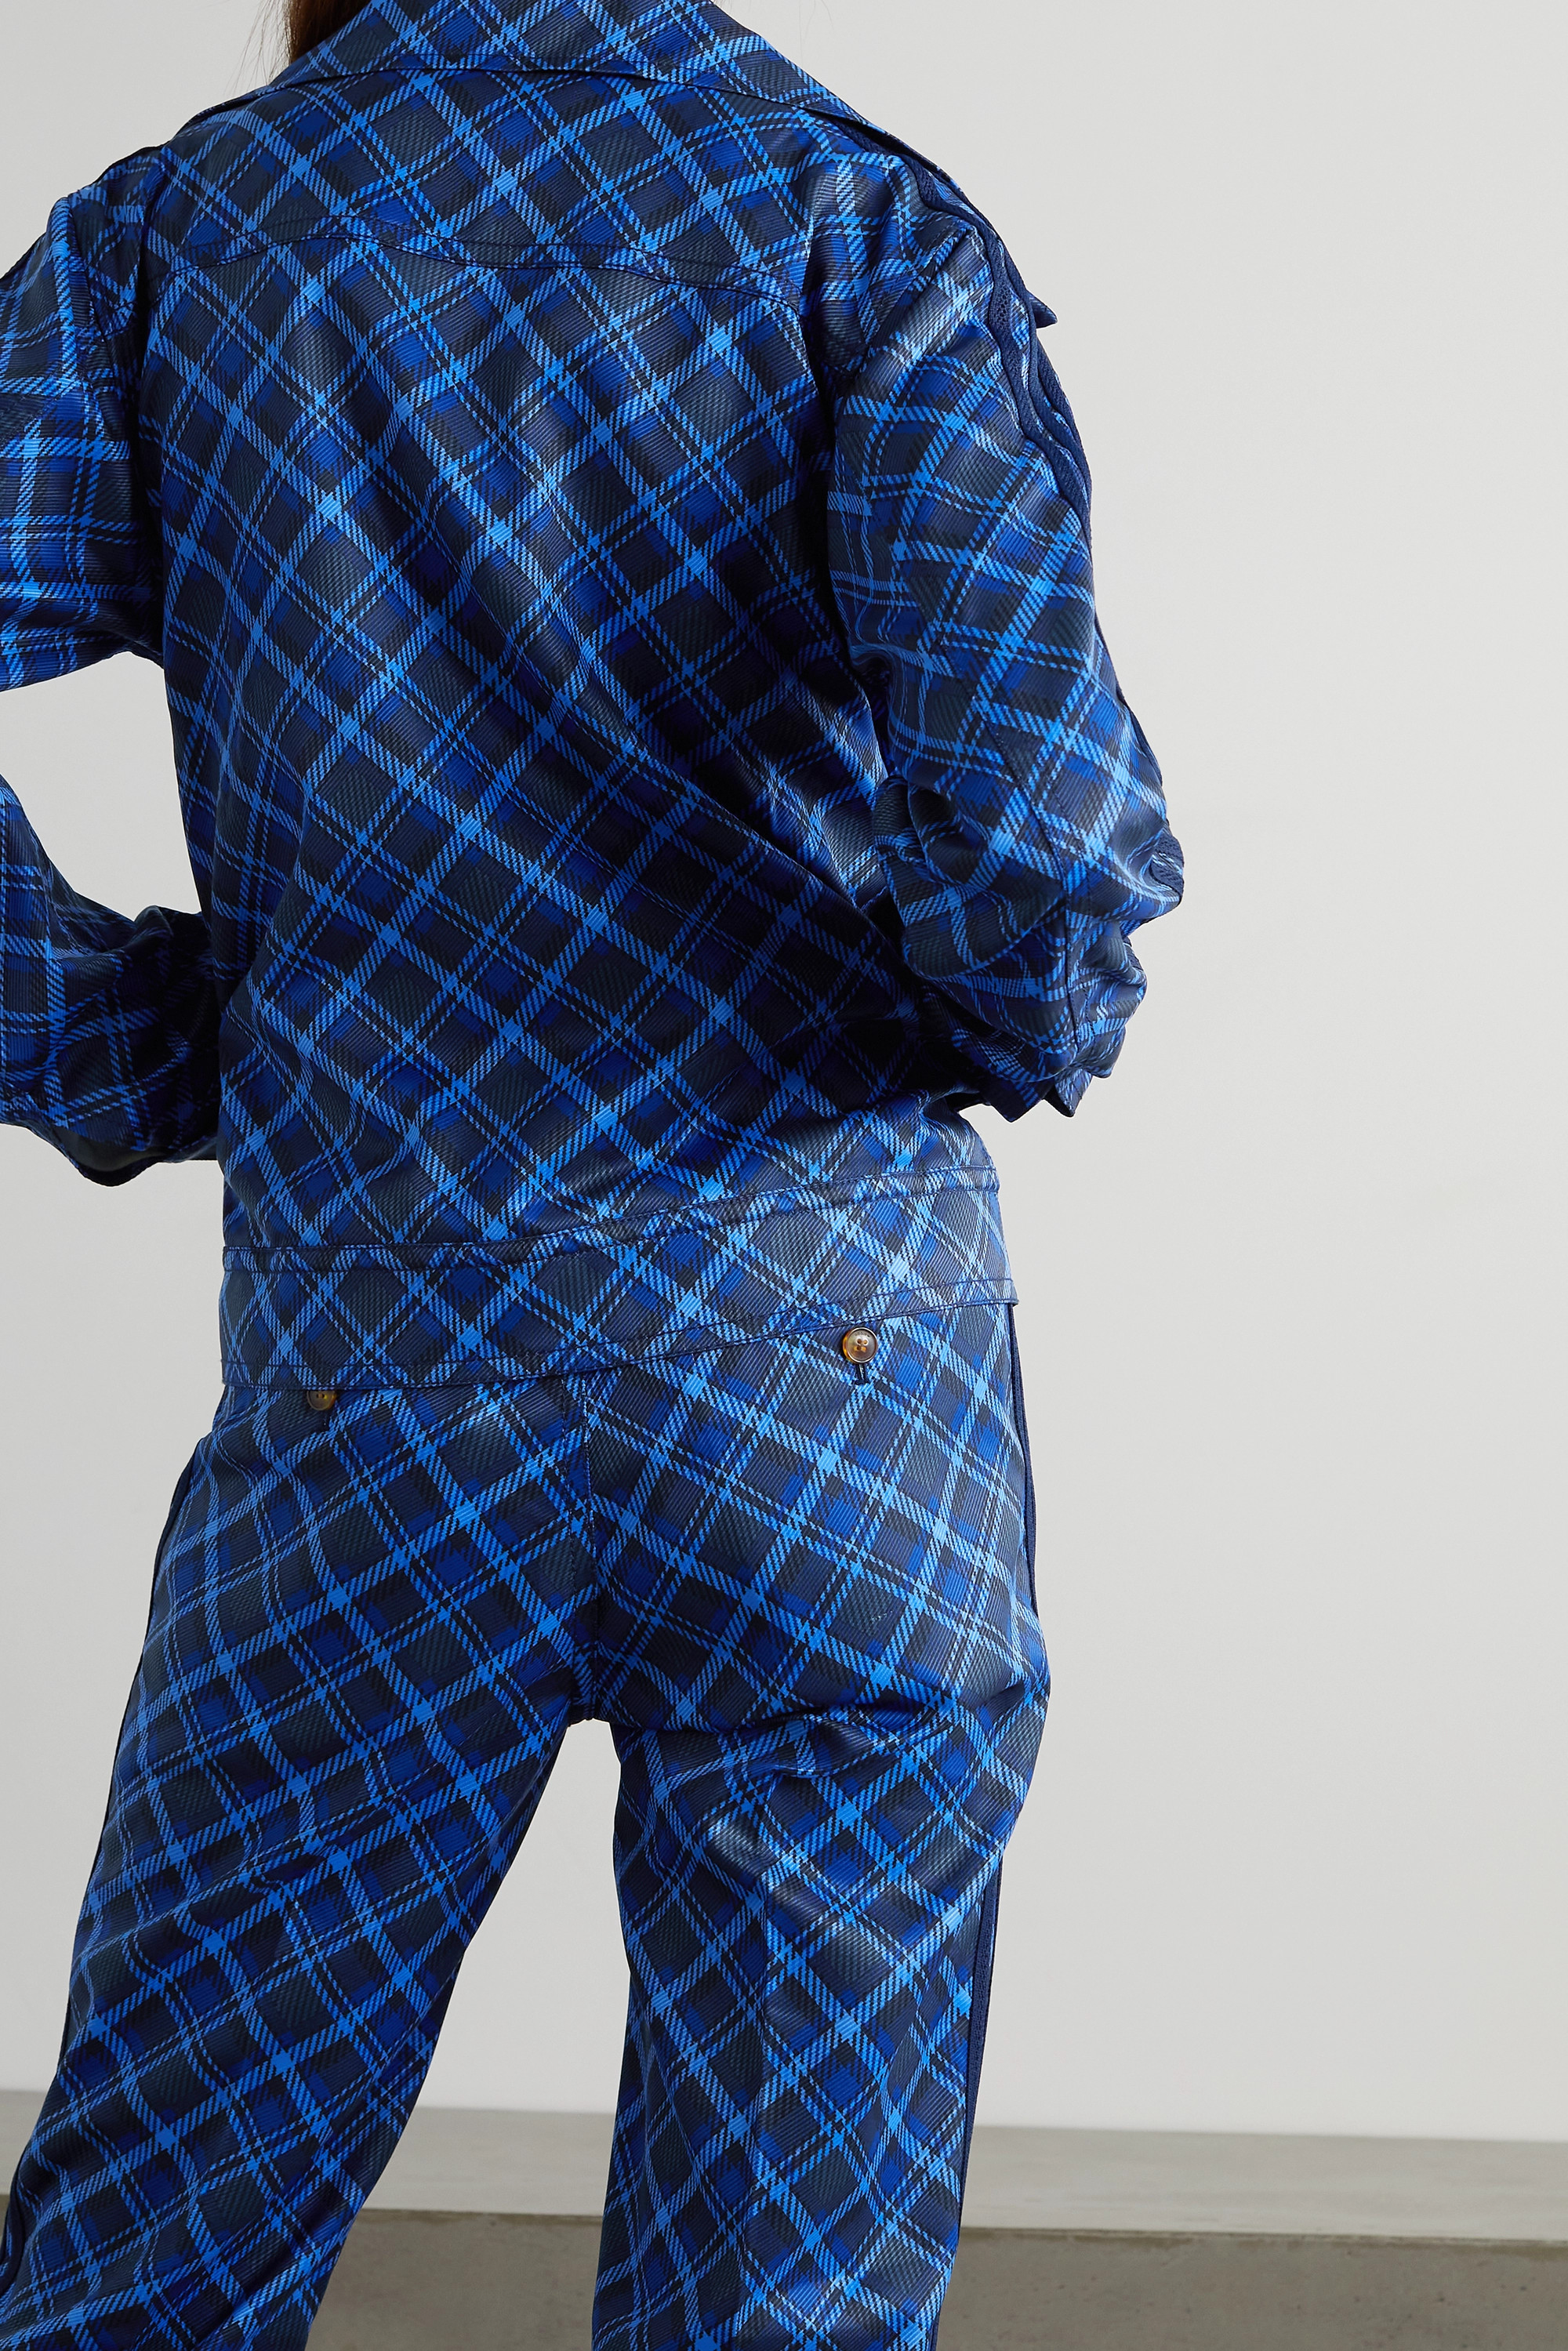 ADIDAS ORIGINALS + Wales Bonner striped checked twill track jacket